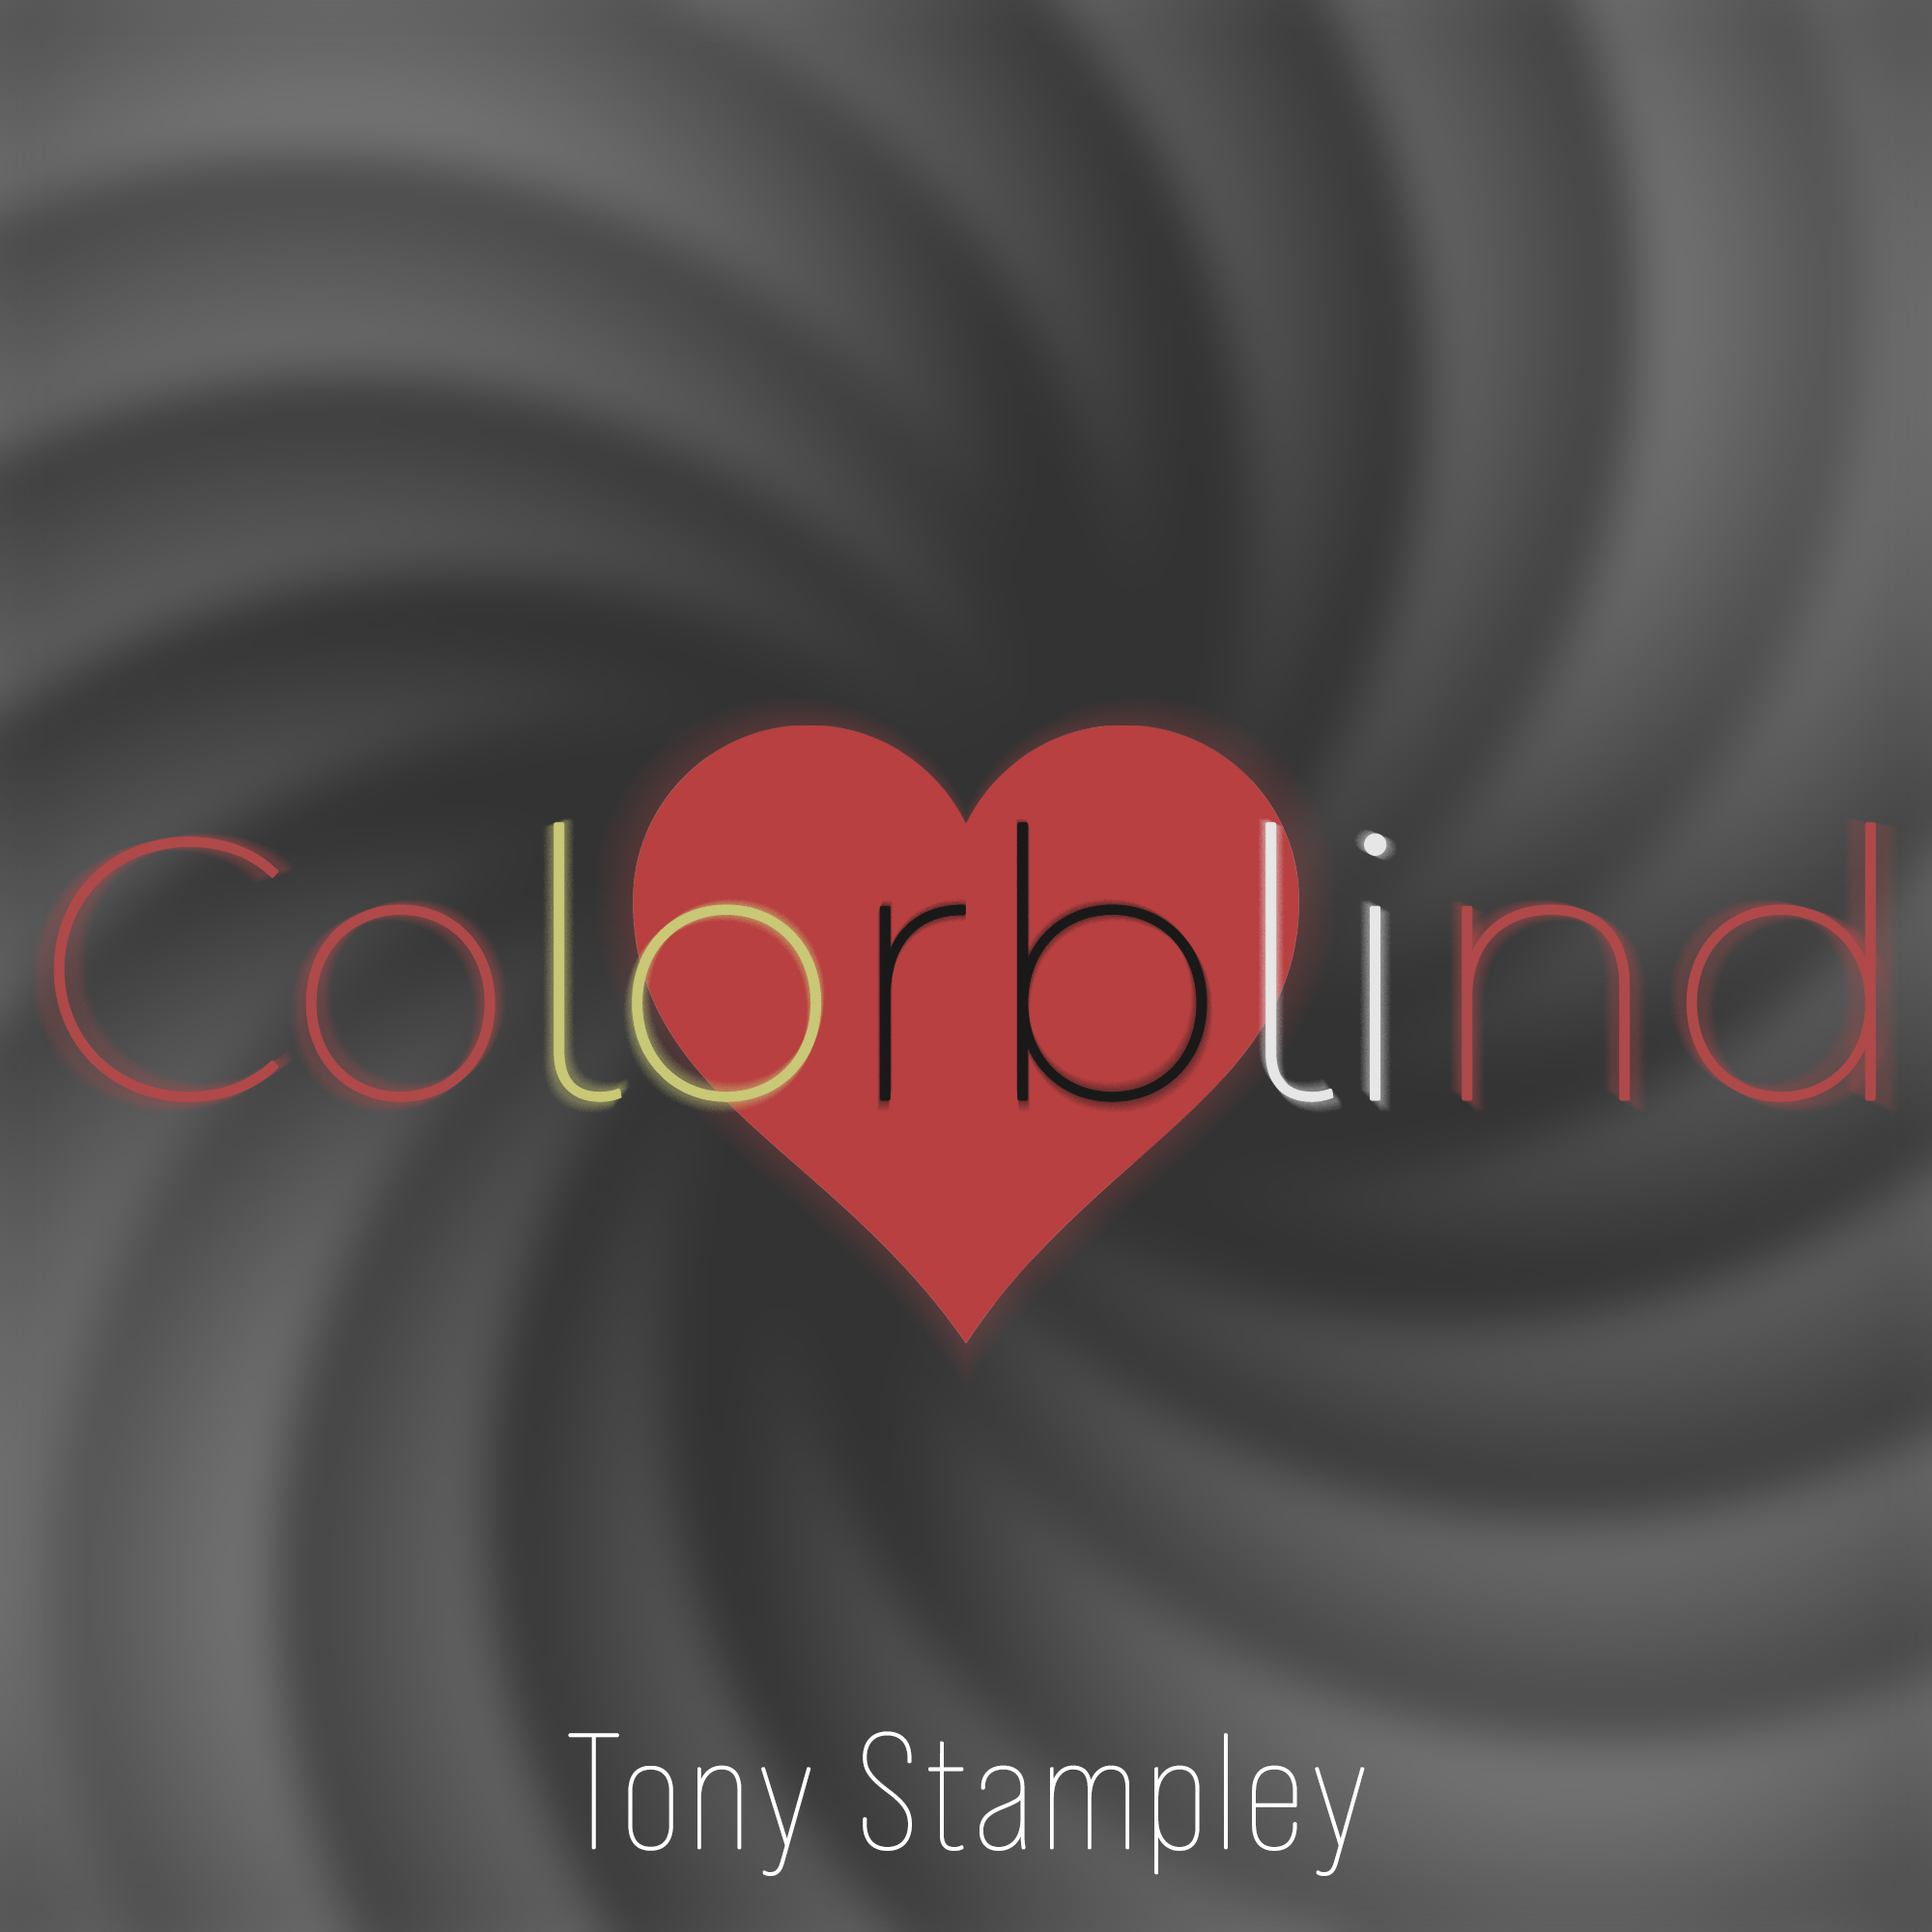 CELEBRATED WRITER/ARTIST TONY STAMPLEY DELIVERS A UNIFYING PERSPECTIVE WITH HIS NEW SINGLE COLORBLIND